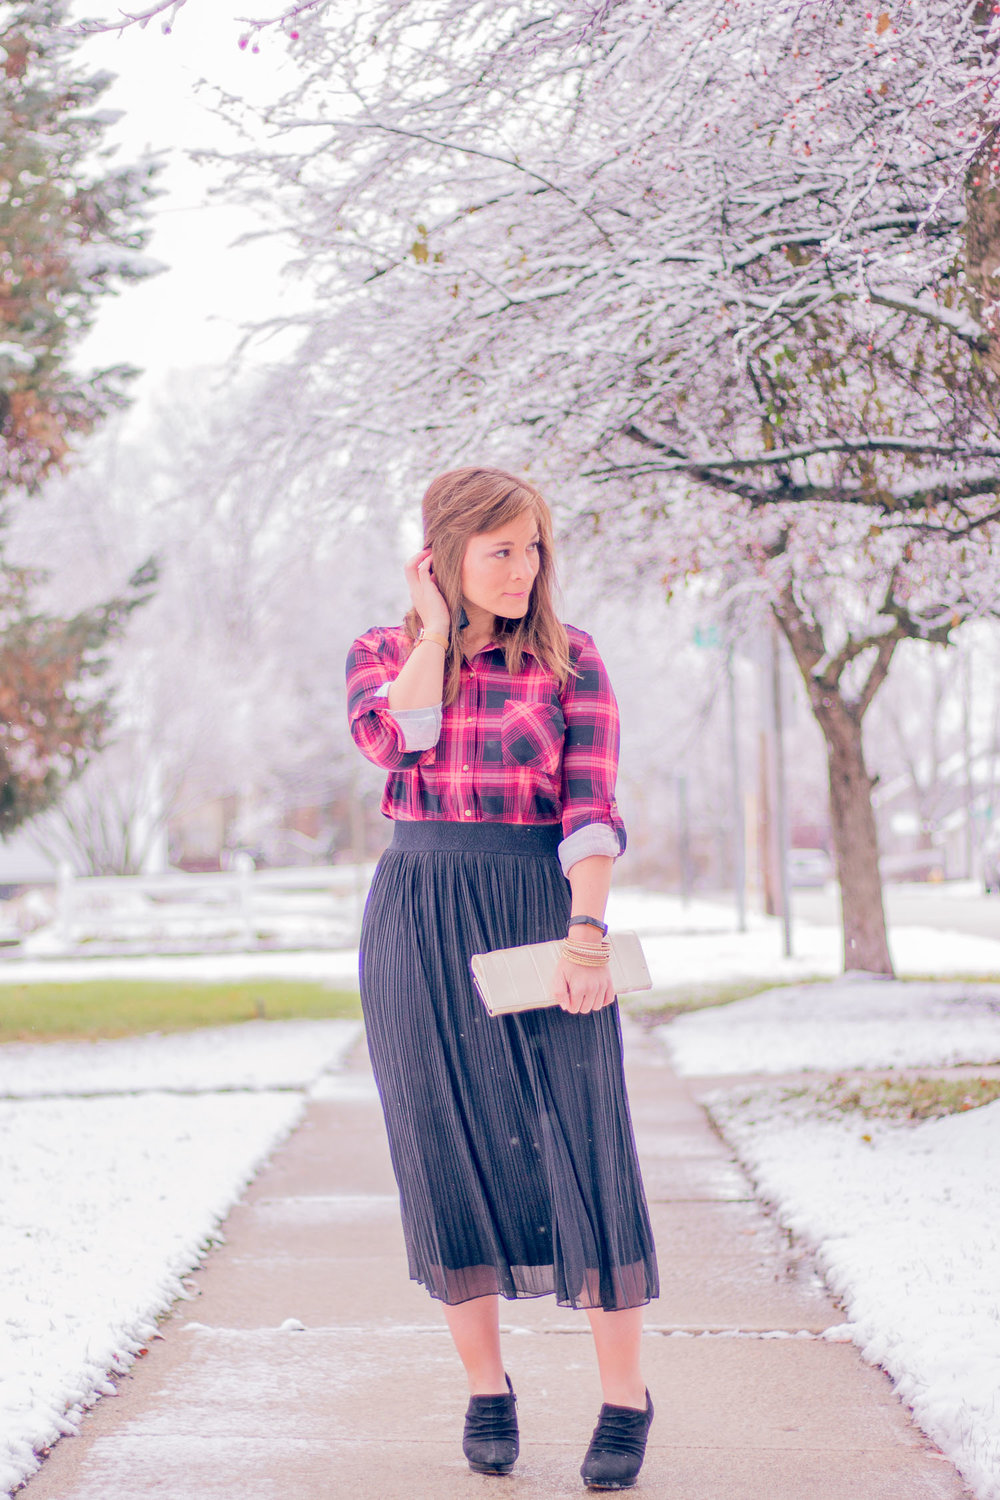 Cute-Winter-Outfits.jpg